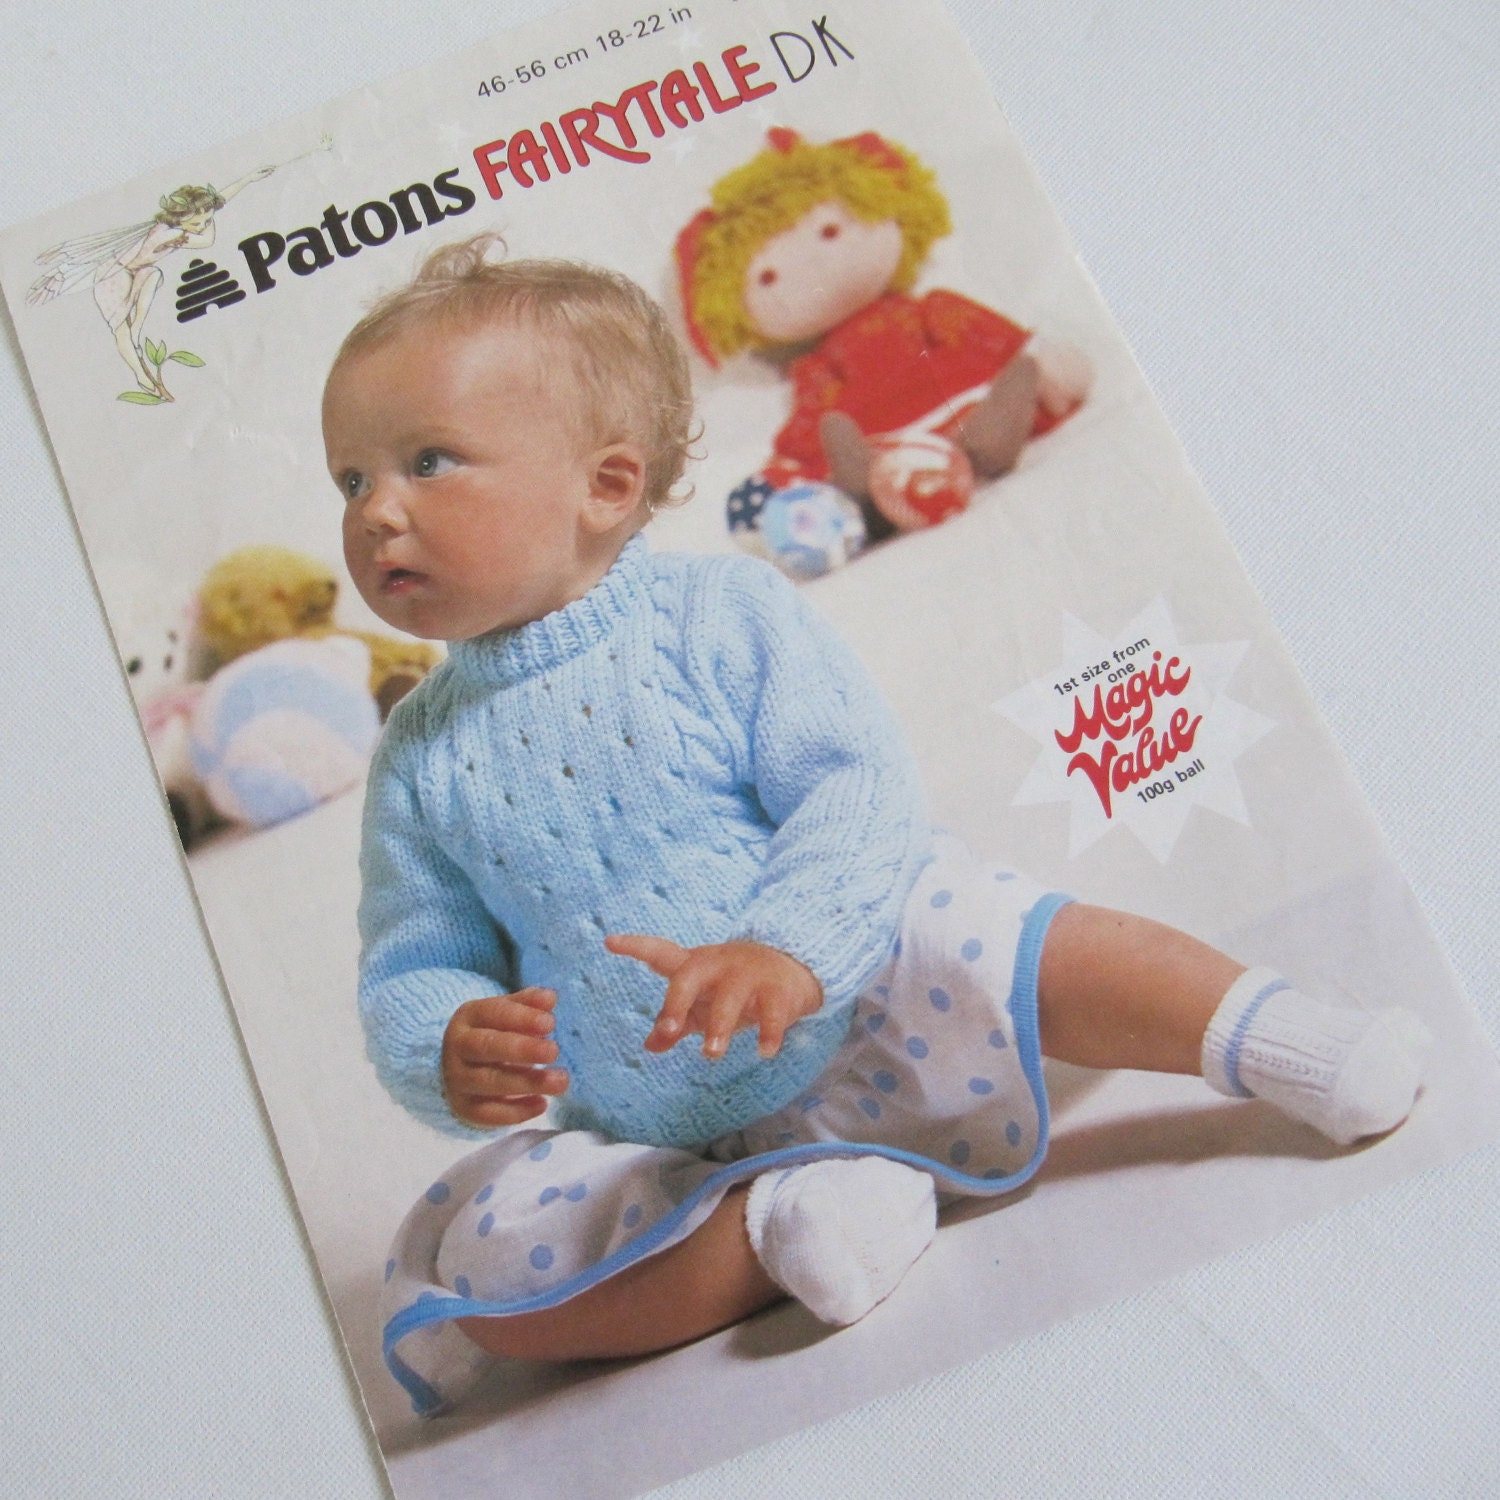 Vintage Baby Knitting Pattern Sweater Patons B 7632 18 to 22